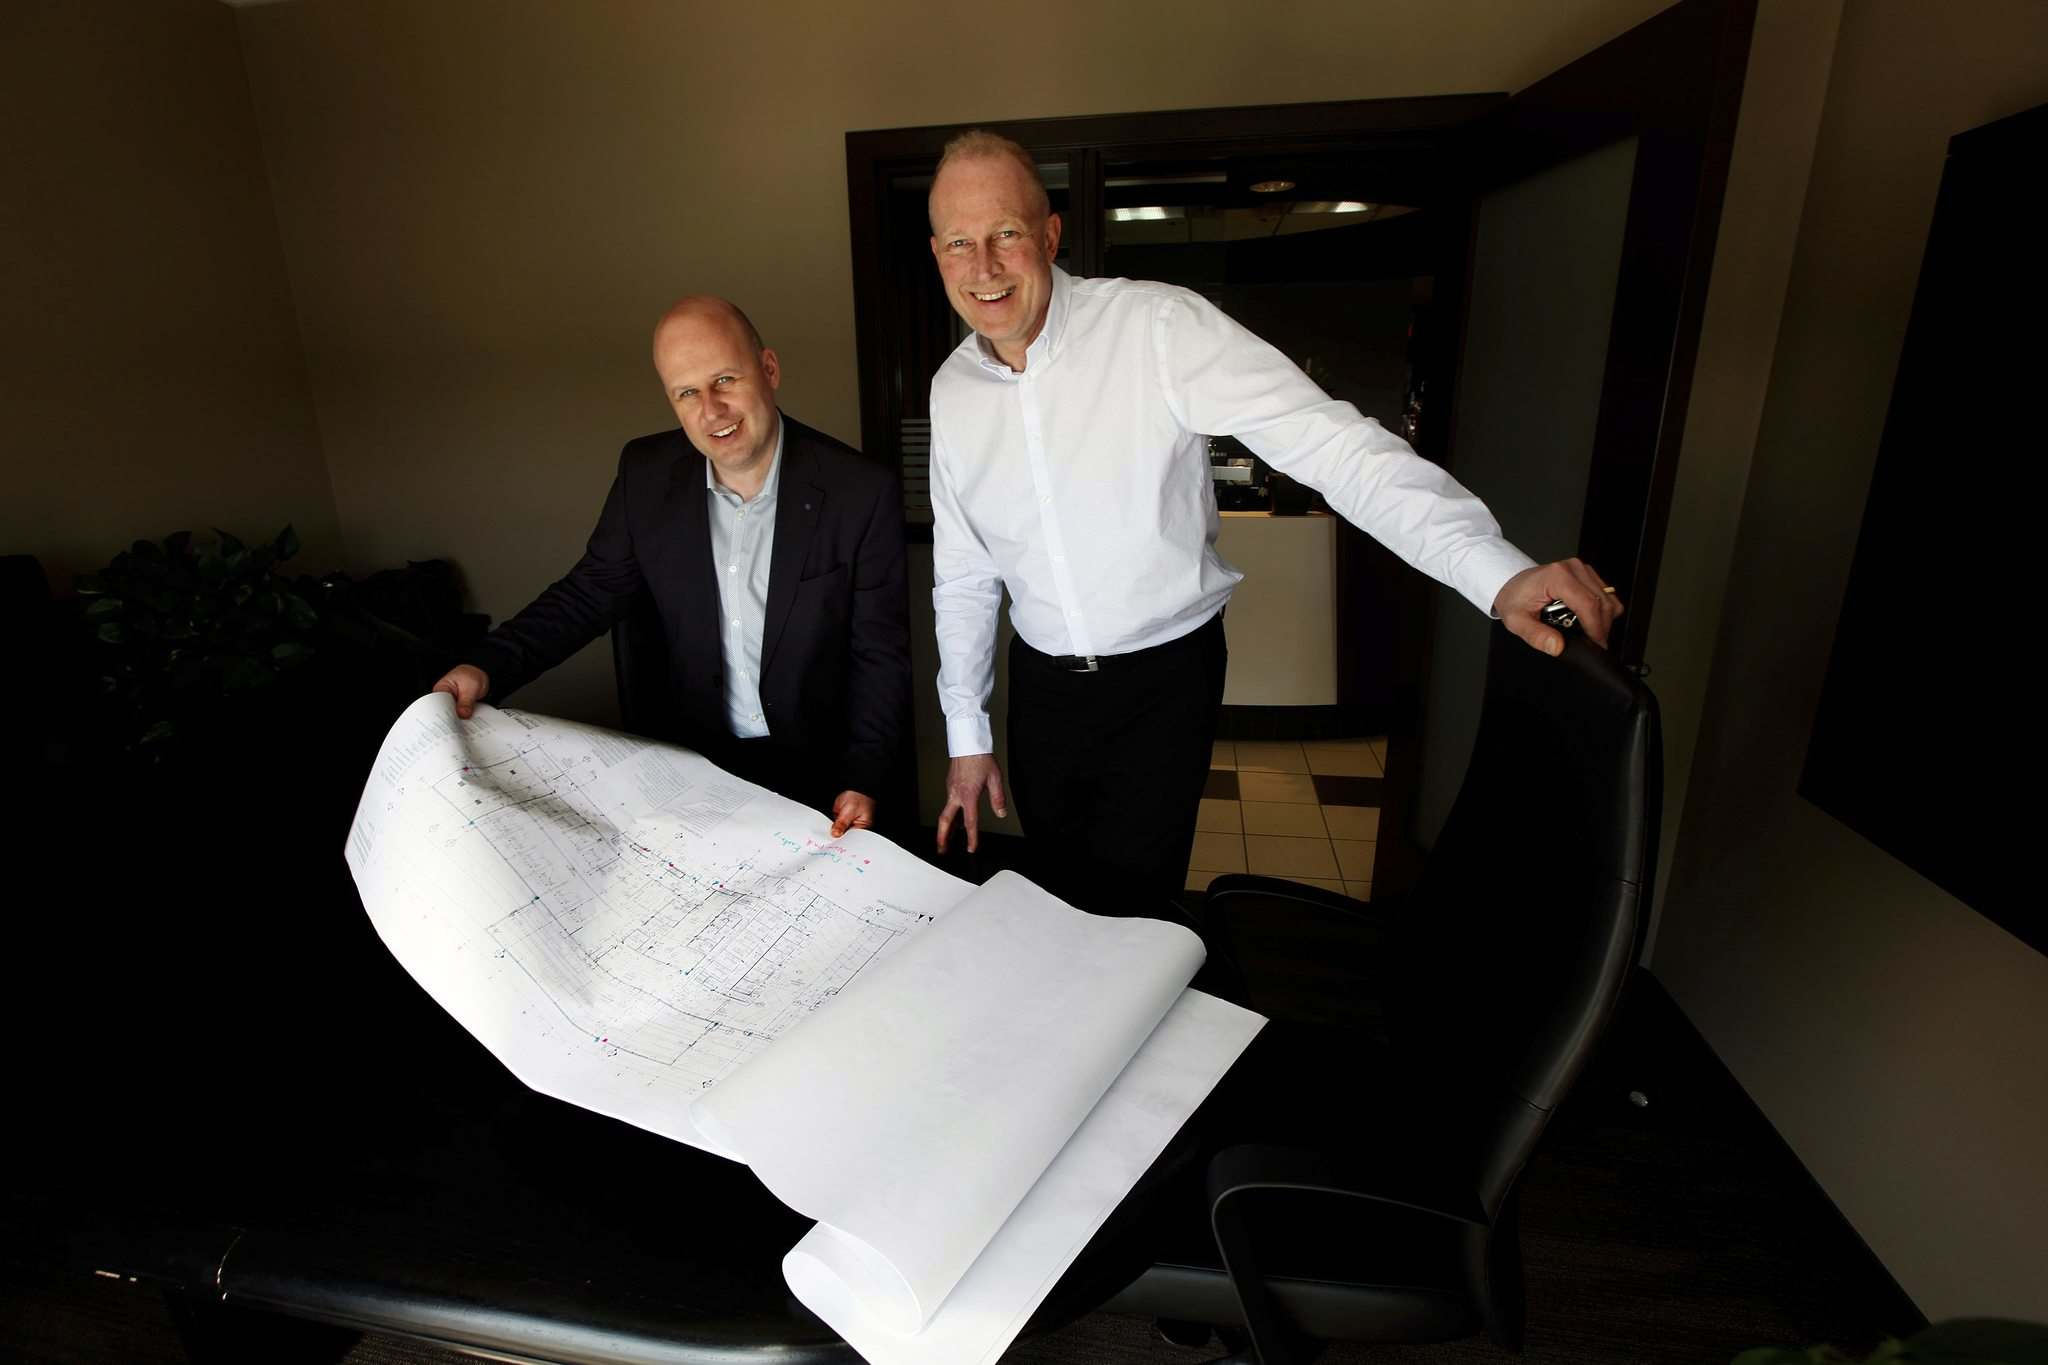 Birchwood Automotive Group's Kevin McNeill (left) and Rene Nicholson survey designs for expansion. (Phil Hossack / Winnipeg Free Press)</p>